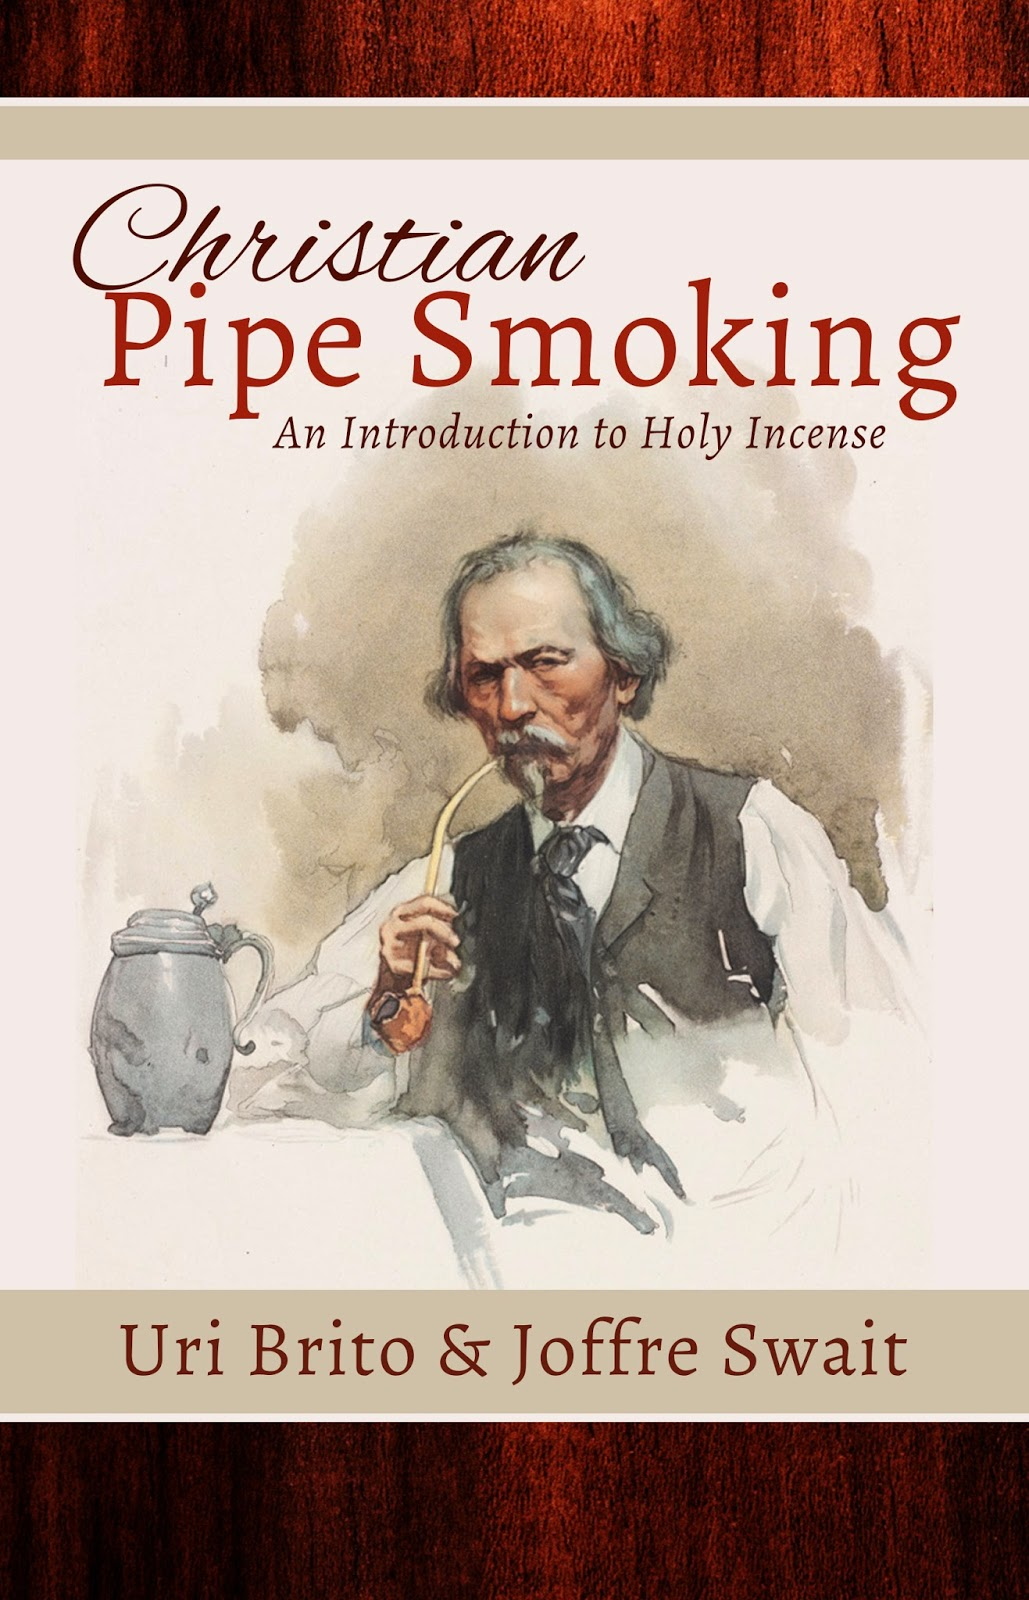 ChristianPipeSmoking-Cover-UriBrito